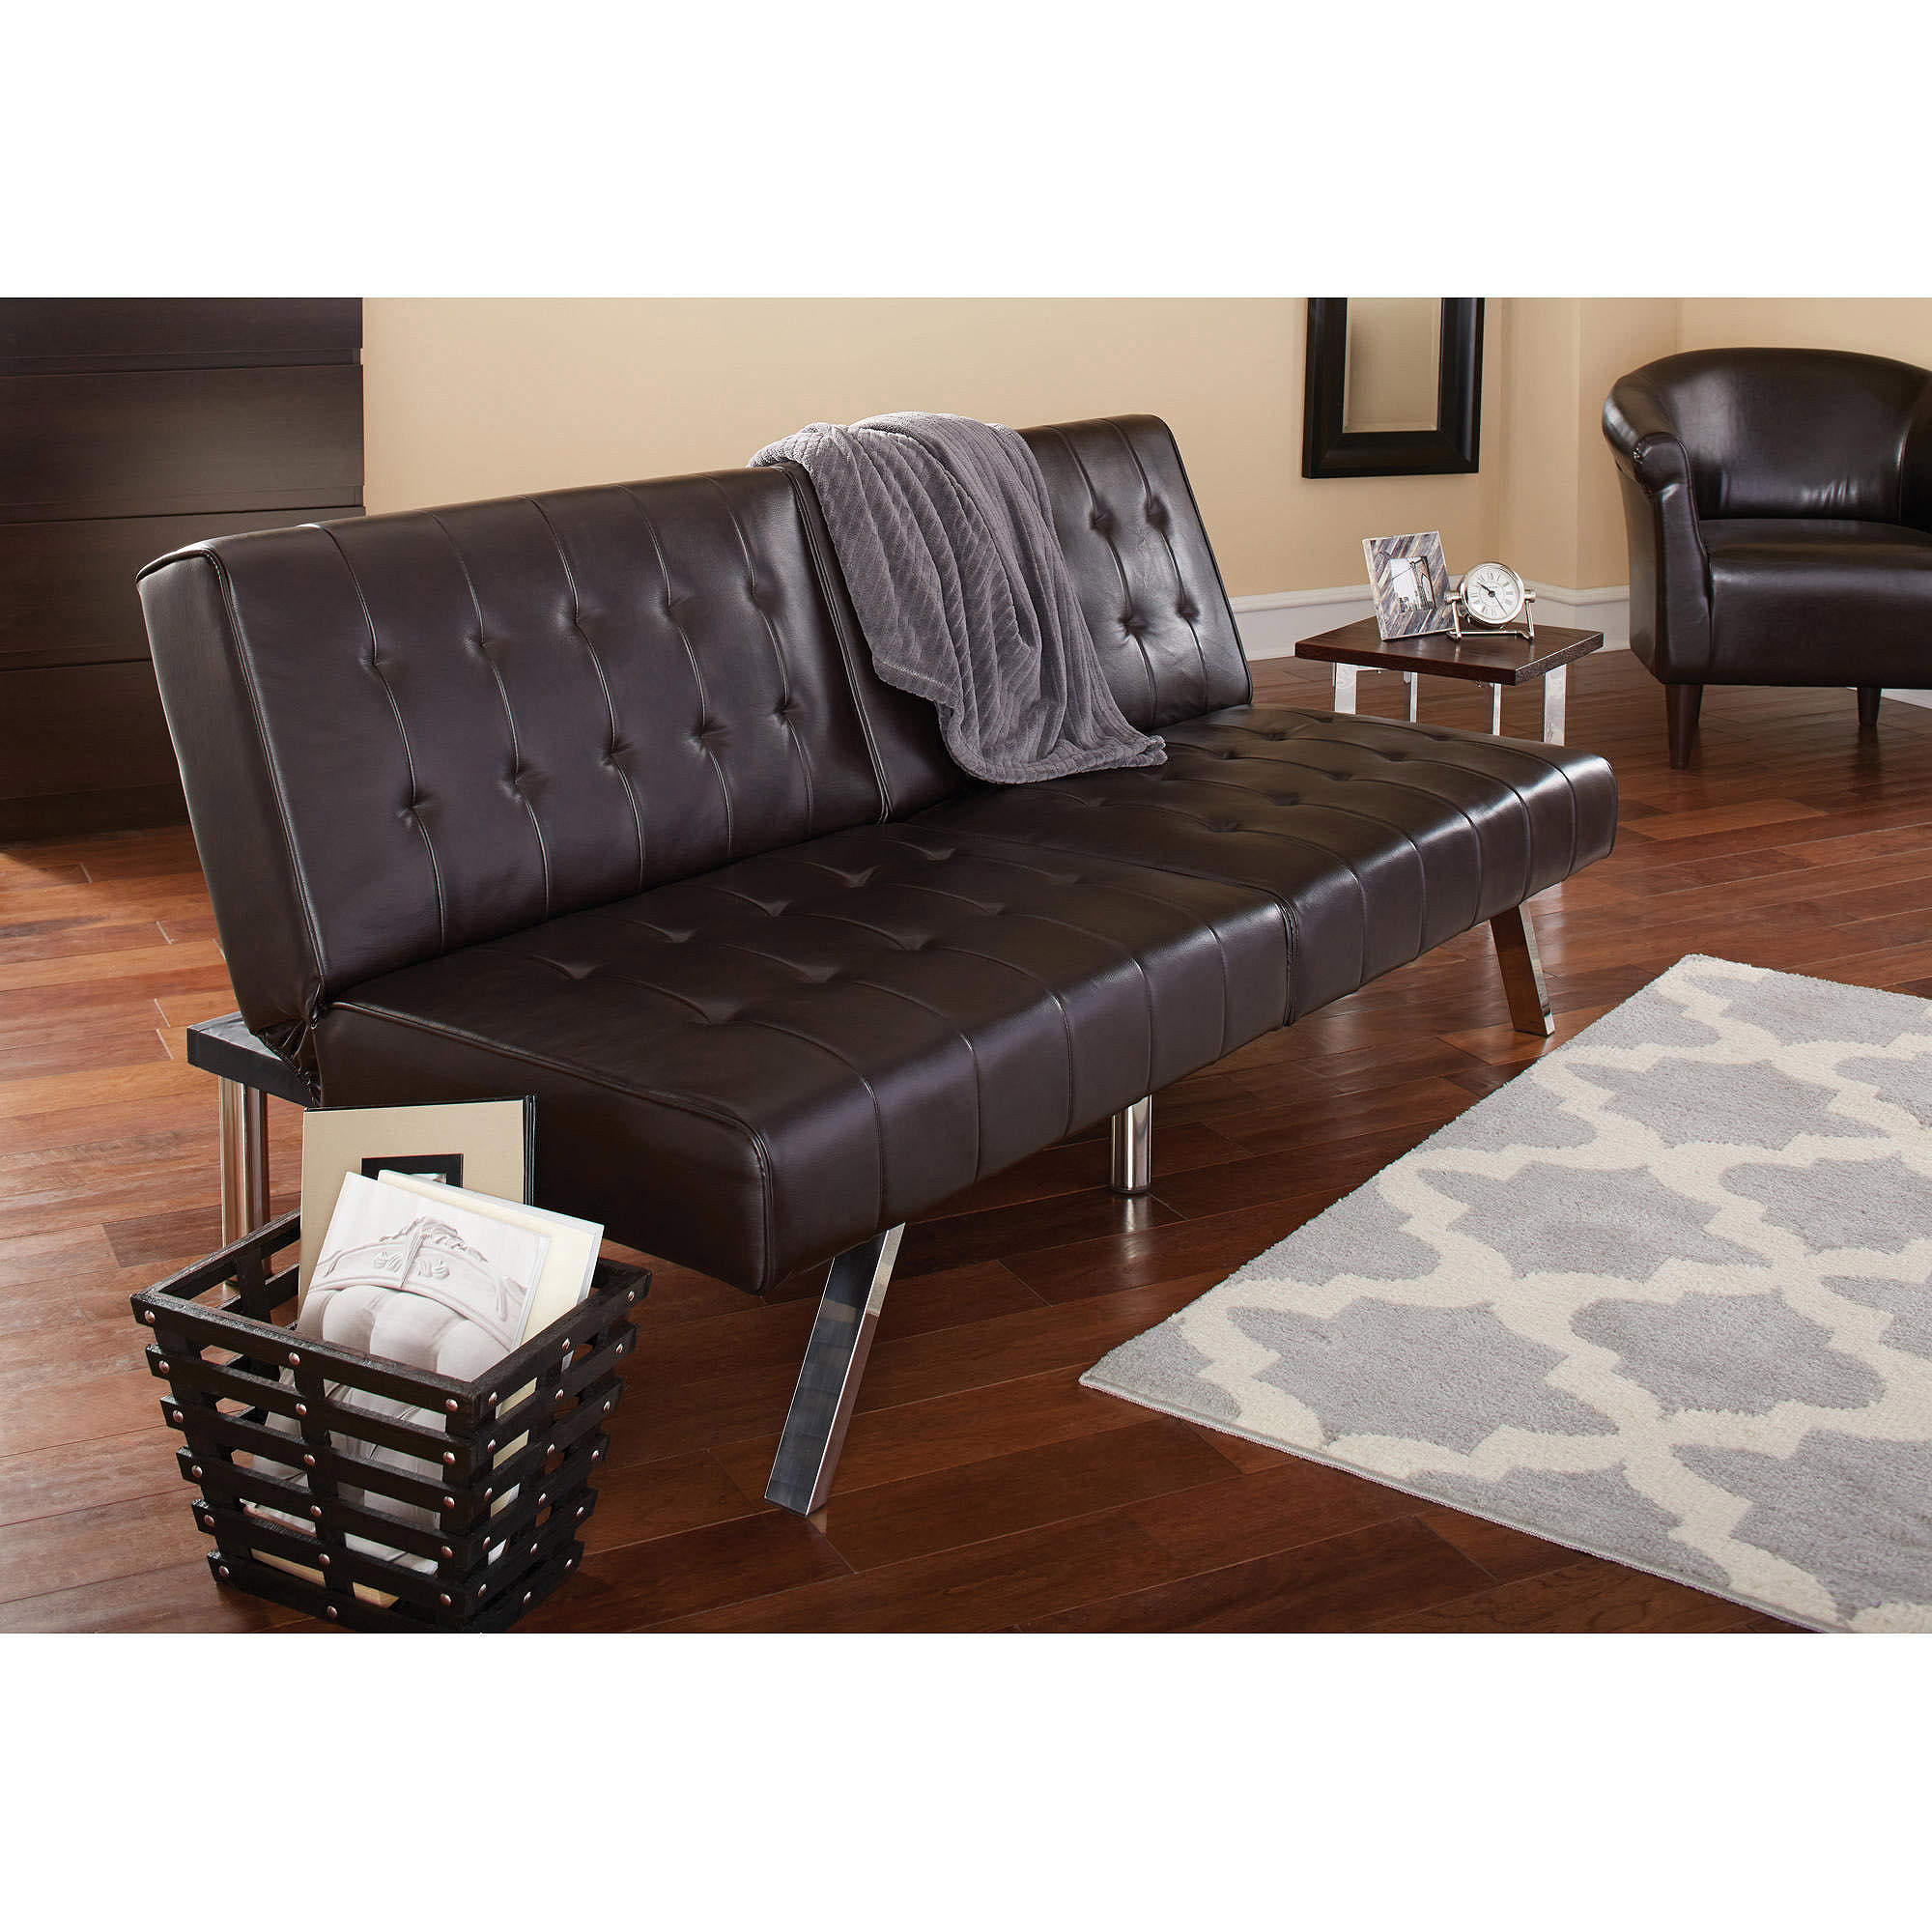 Mainstays Morgan Faux Leather Tufted Convertible Futon Brown Walmart